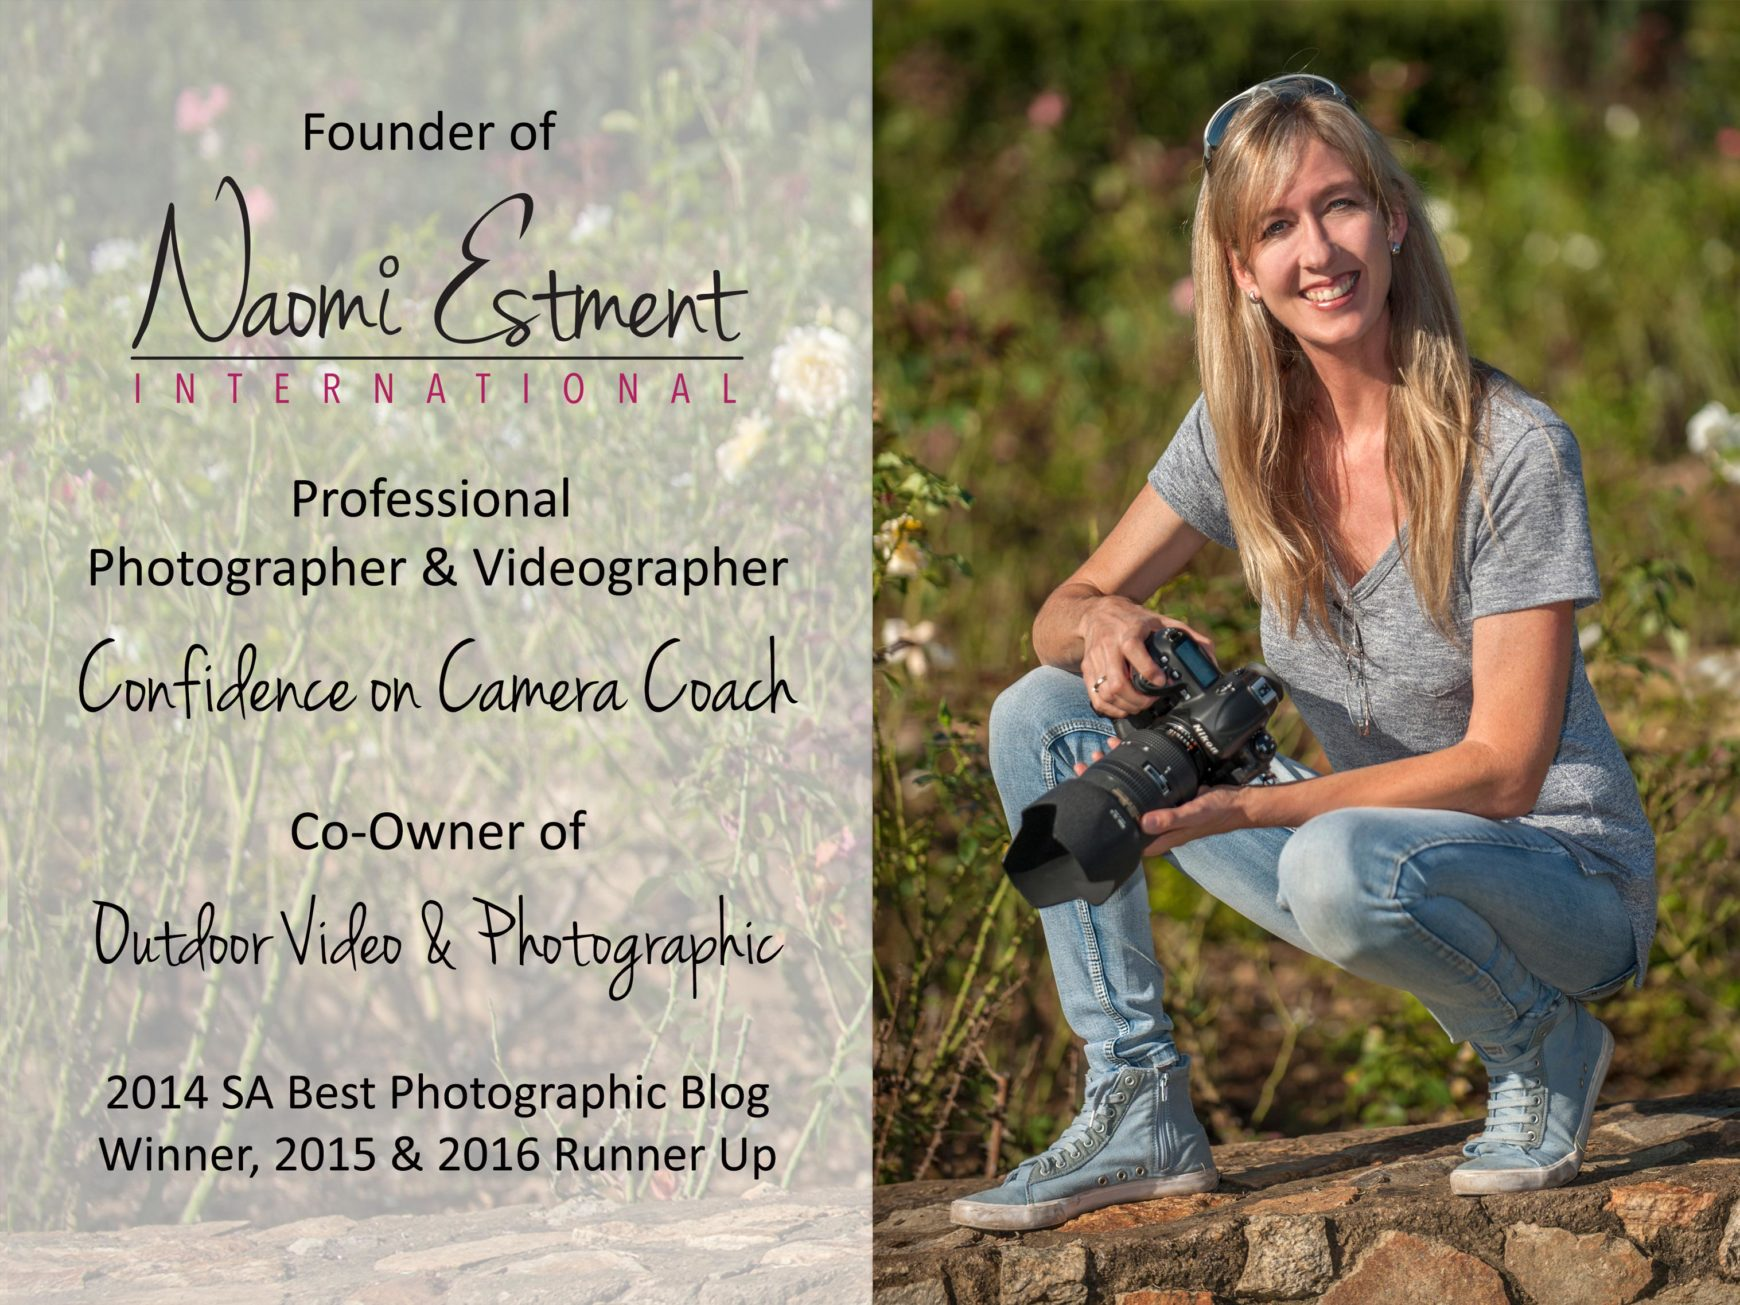 Naomi Estment Brief Bio